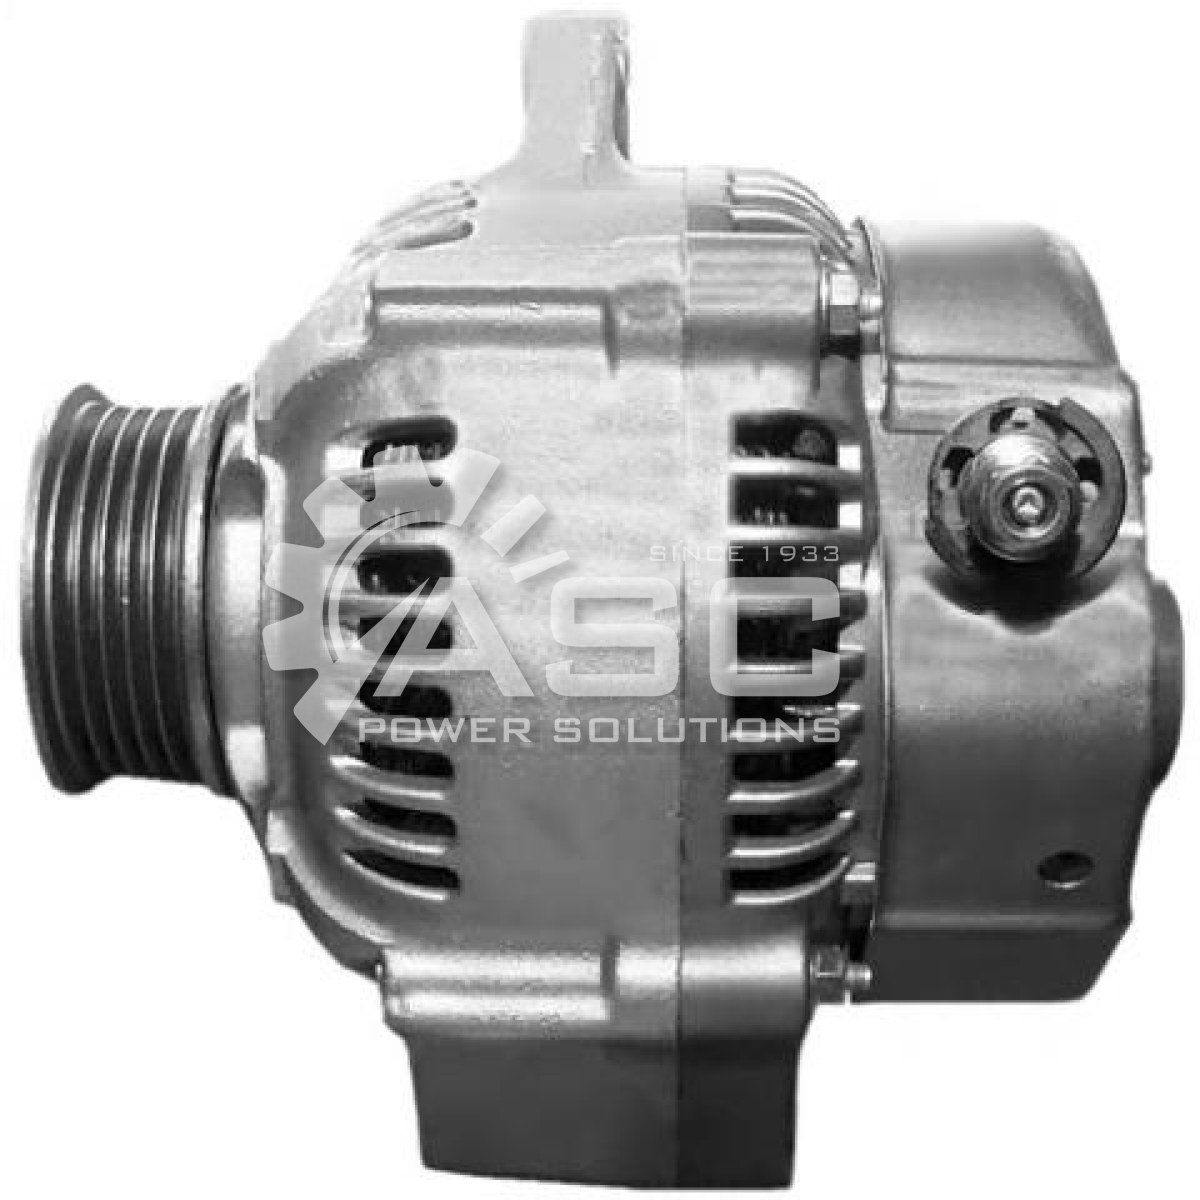 A521210_ASC, Alternator, 12V, 70 Amp, IR, IF, CW, S5, 55MM, DENSO, Reman